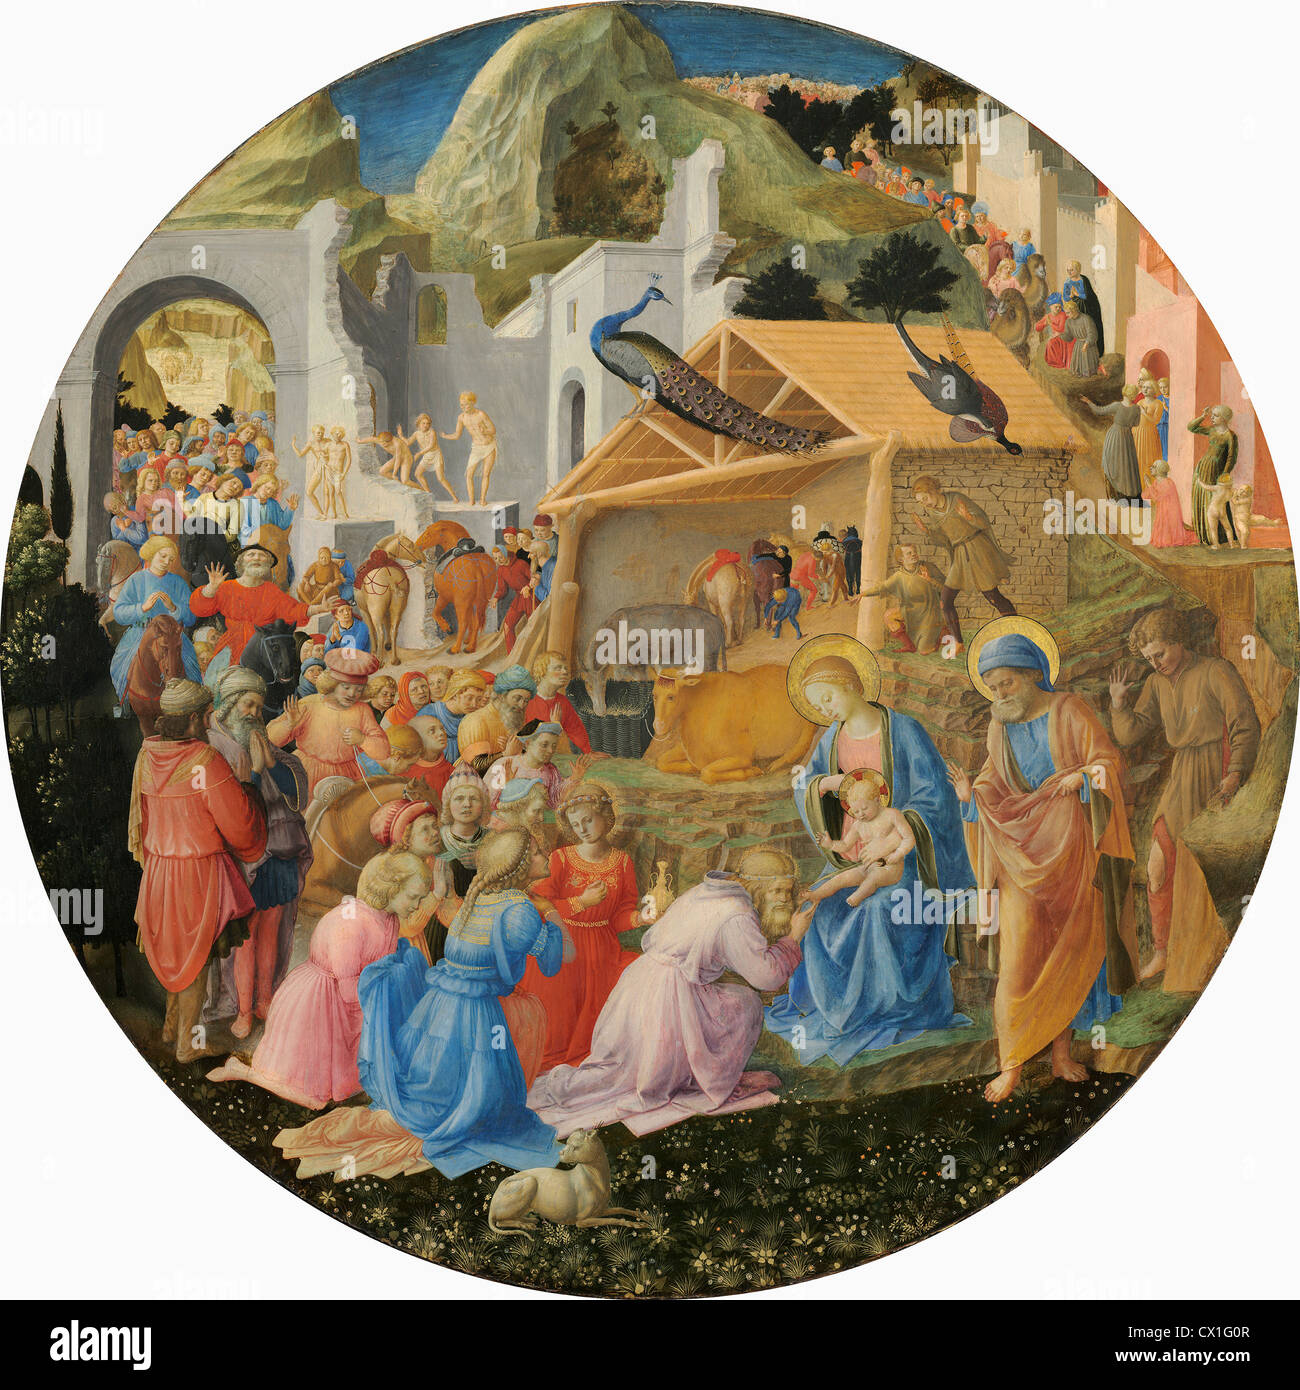 Fra Angelico and Fra Filippo Lippi (Italian, c. 1395 - 1455 ), The Adoration of the Magi, c. 1440/1460, tempera - Stock Image